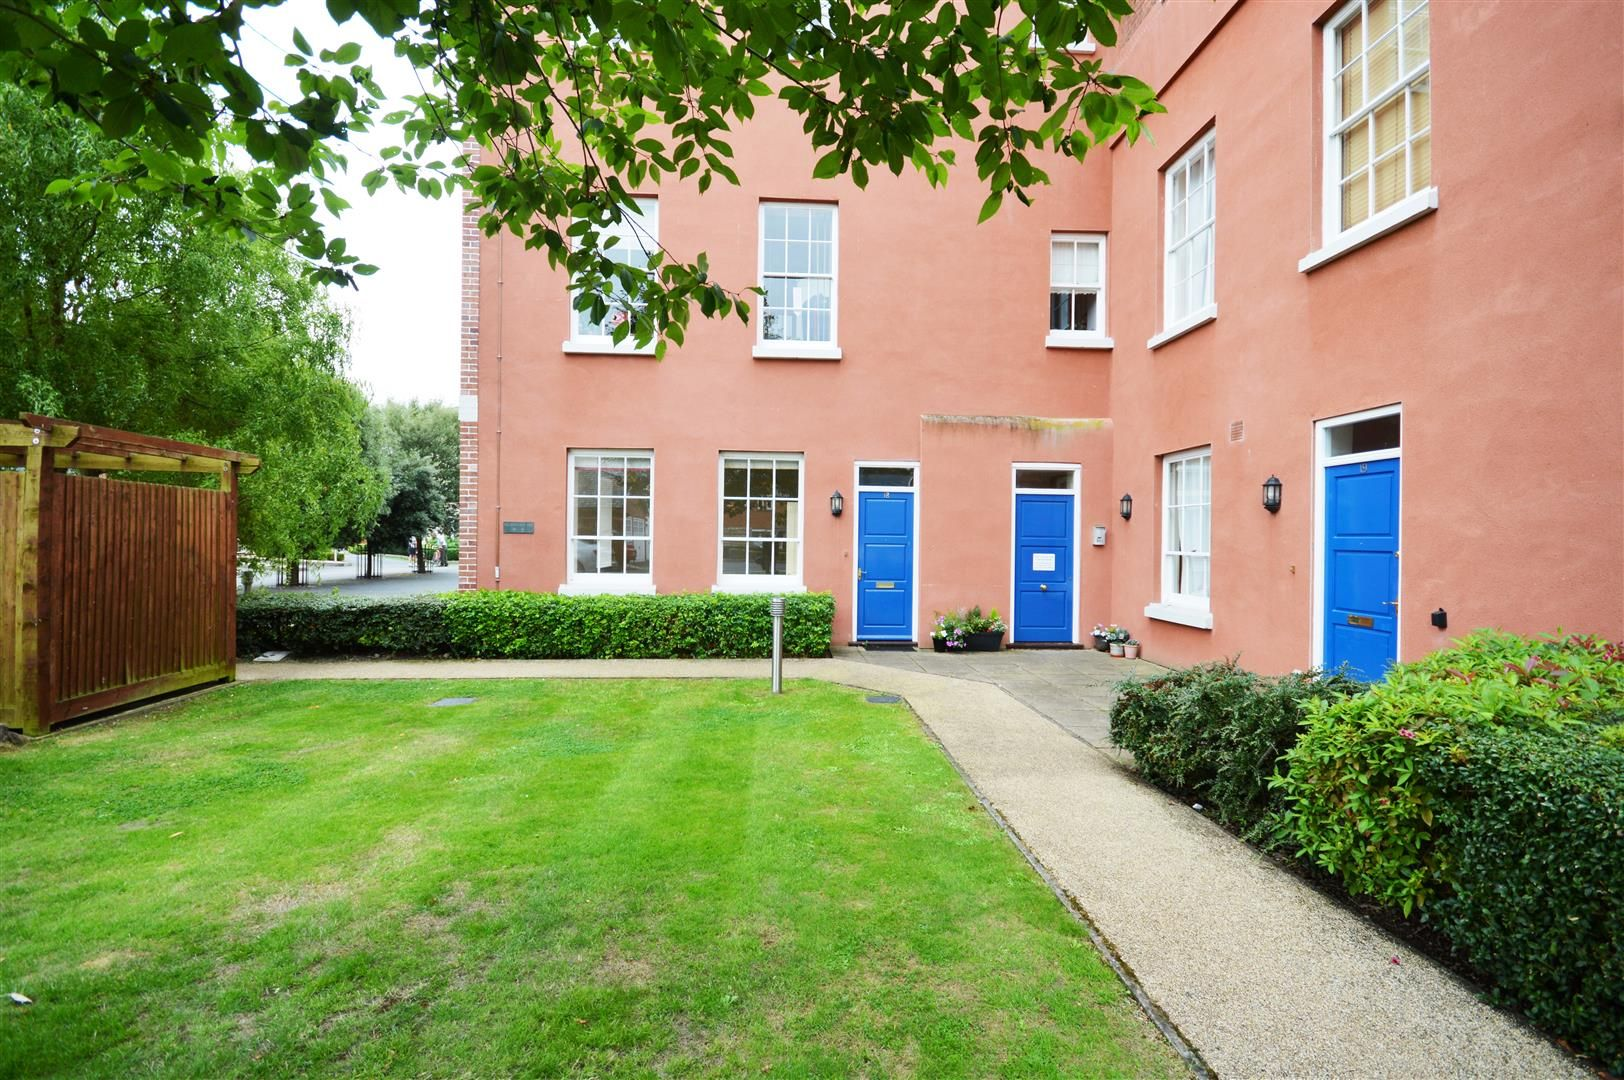 2 bed apartment to rent, HR1